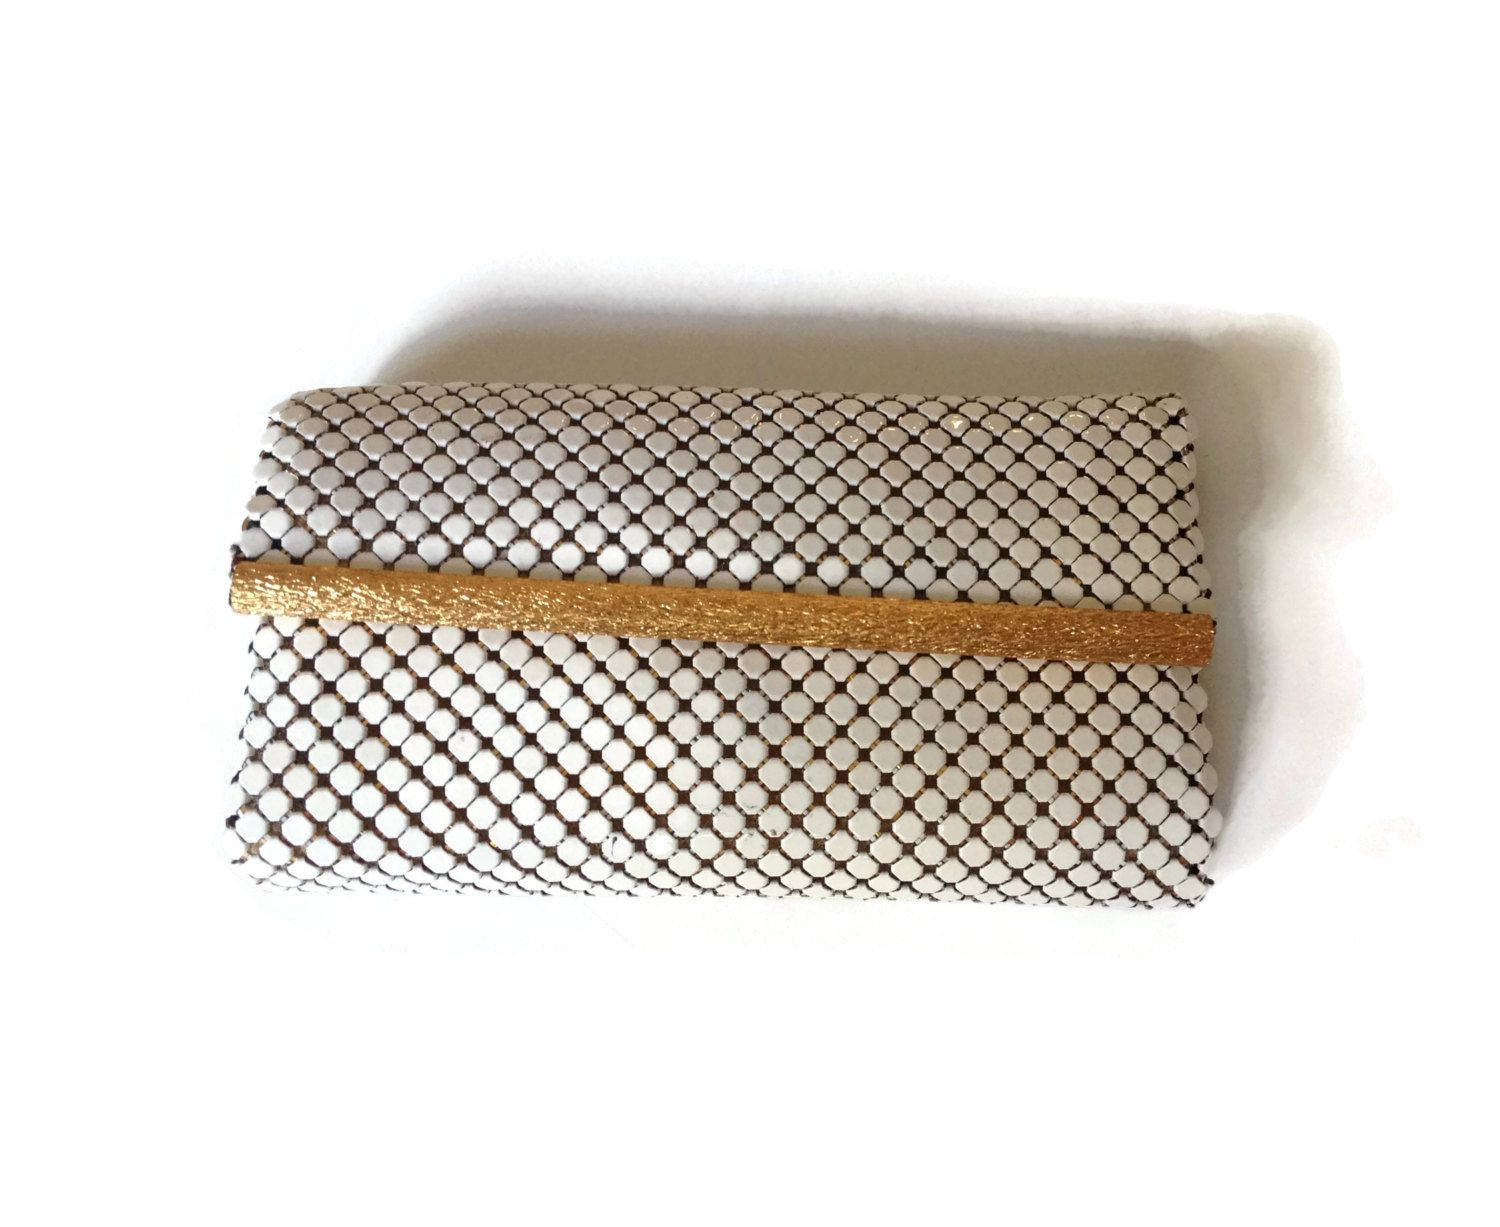 Whiting and Davis White Key Case/Wallet White Metal Mesh with Gold Trim Black satin Liner - pinned by pin4etsy.com